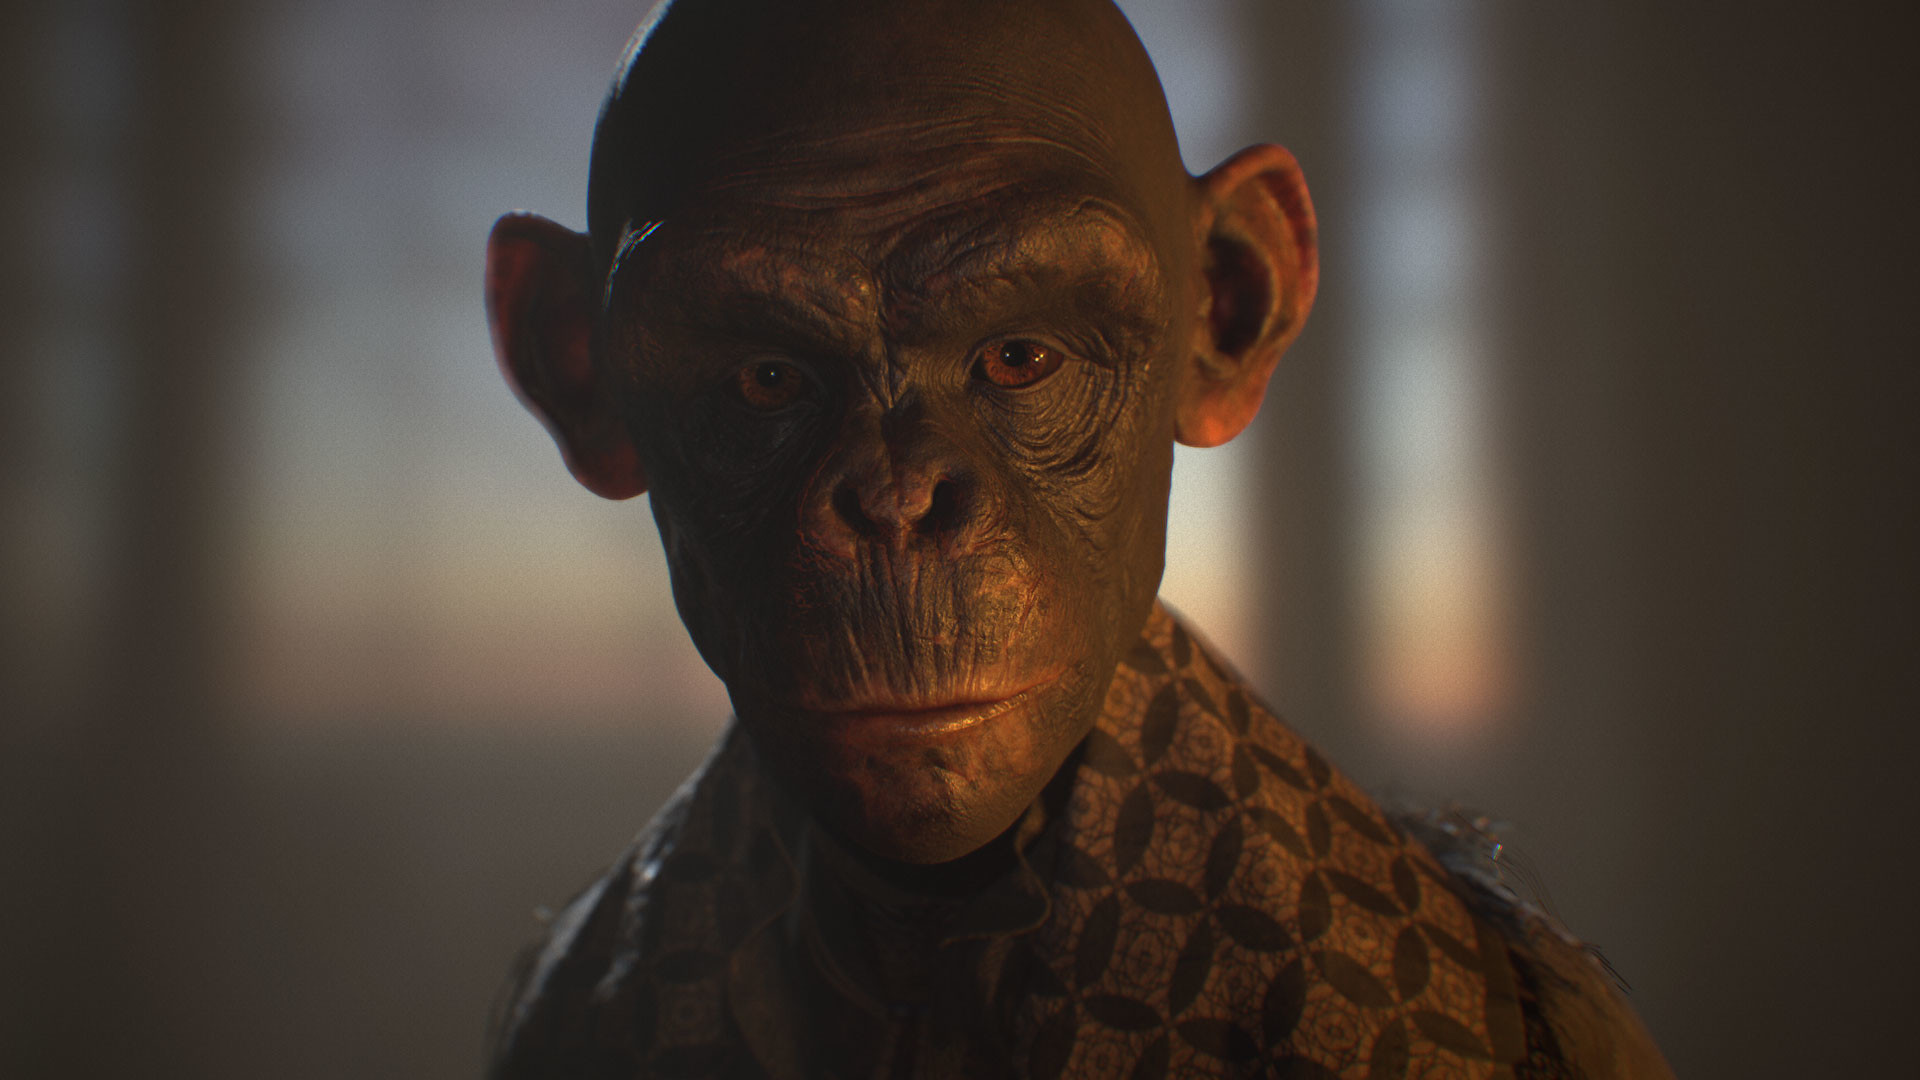 Pablo munoz gomez humanzee alternative render01